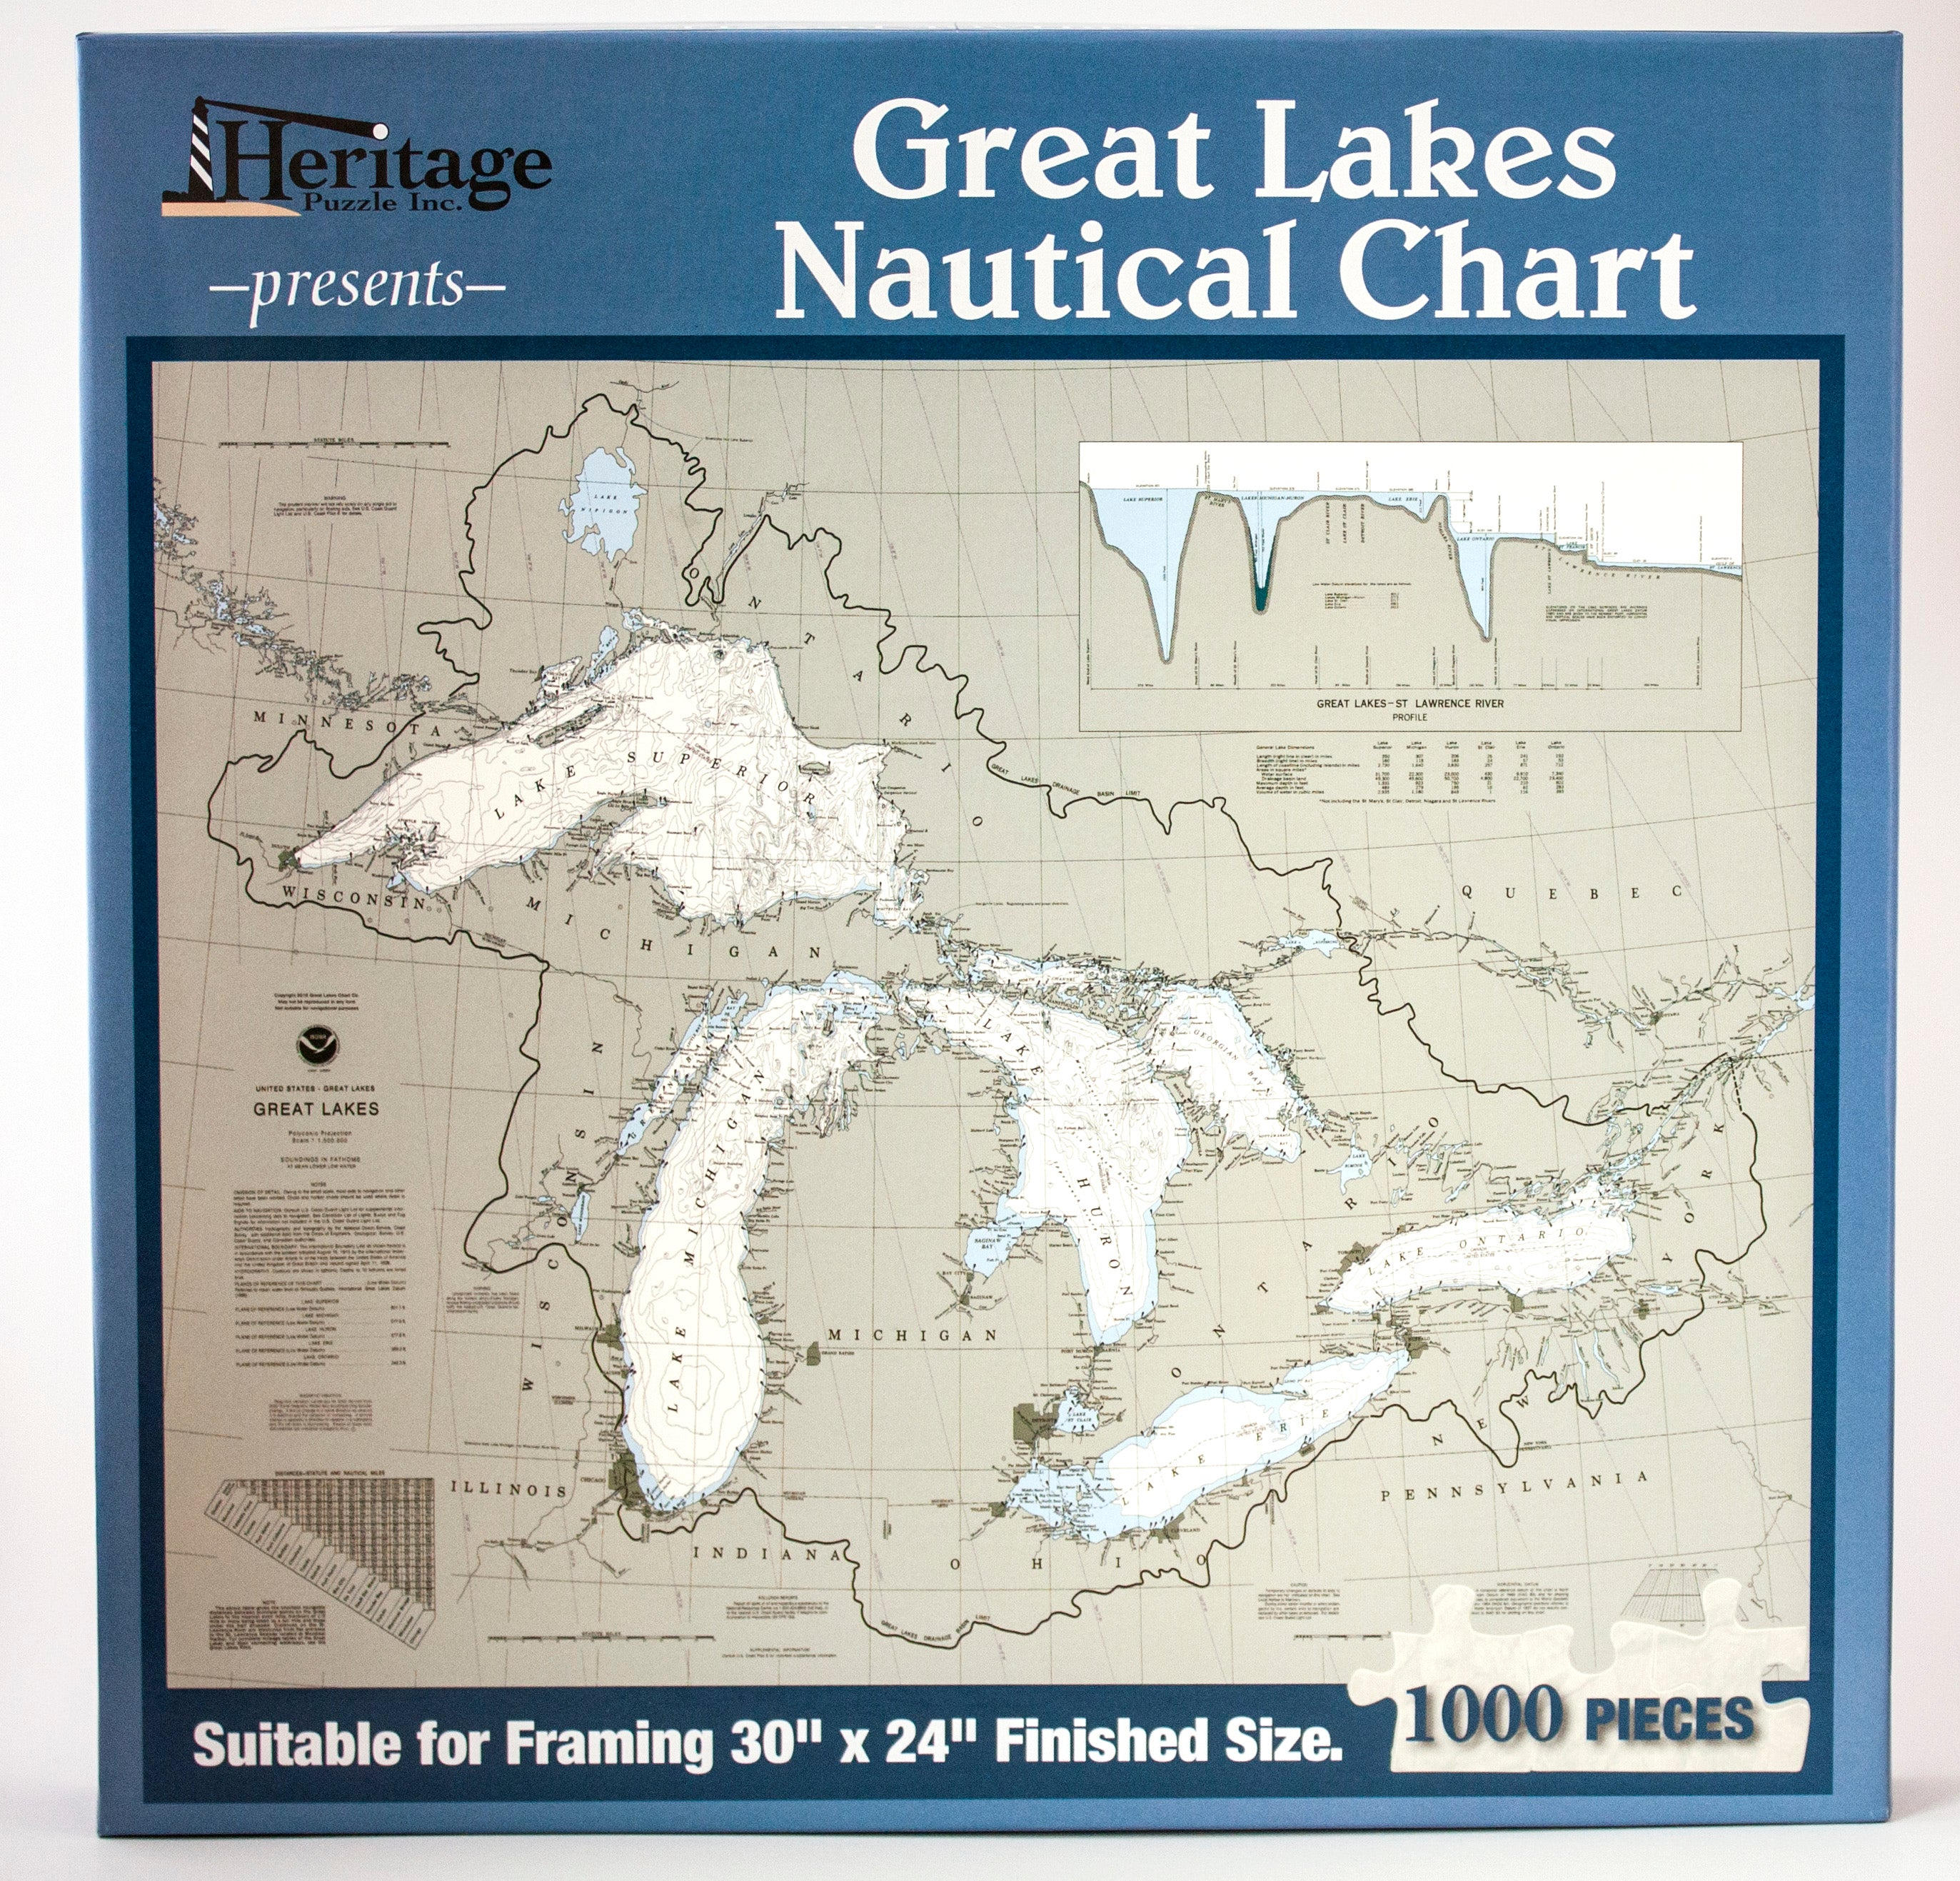 Great Lakes Nautical Chart Puzzle